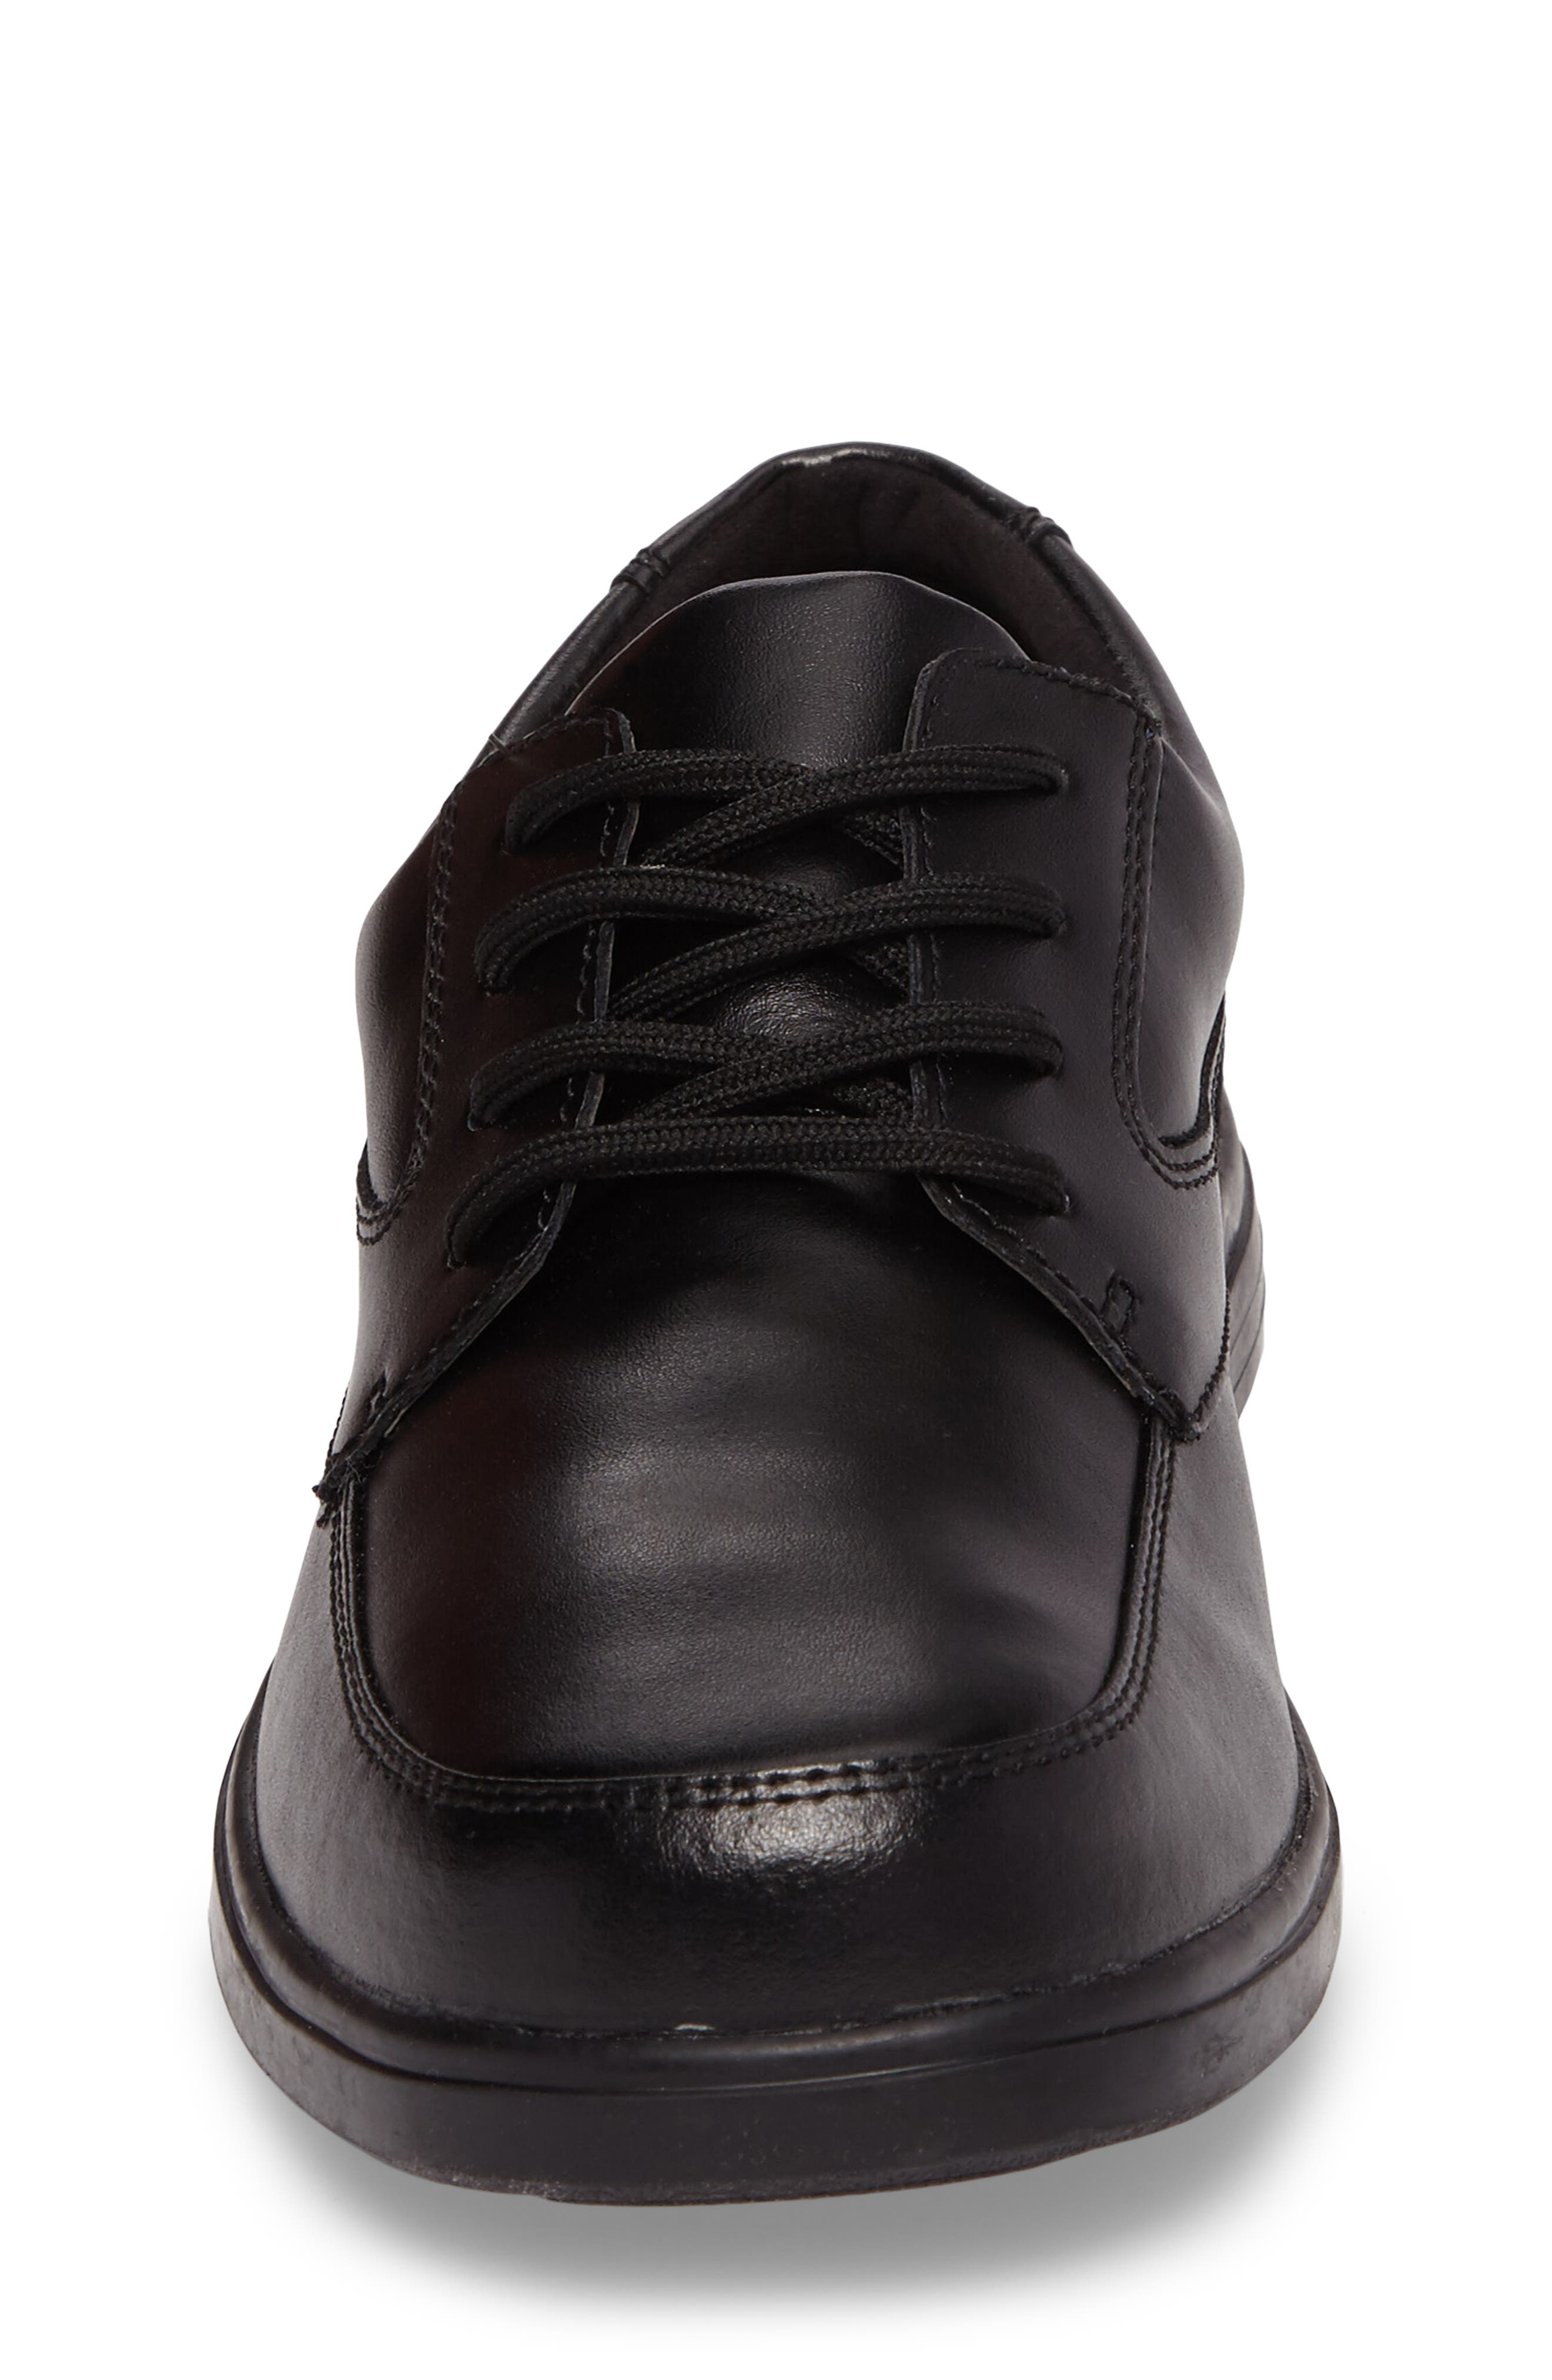 Ty Dress Shoe,                             Alternate thumbnail 4, color,                             Black Leather